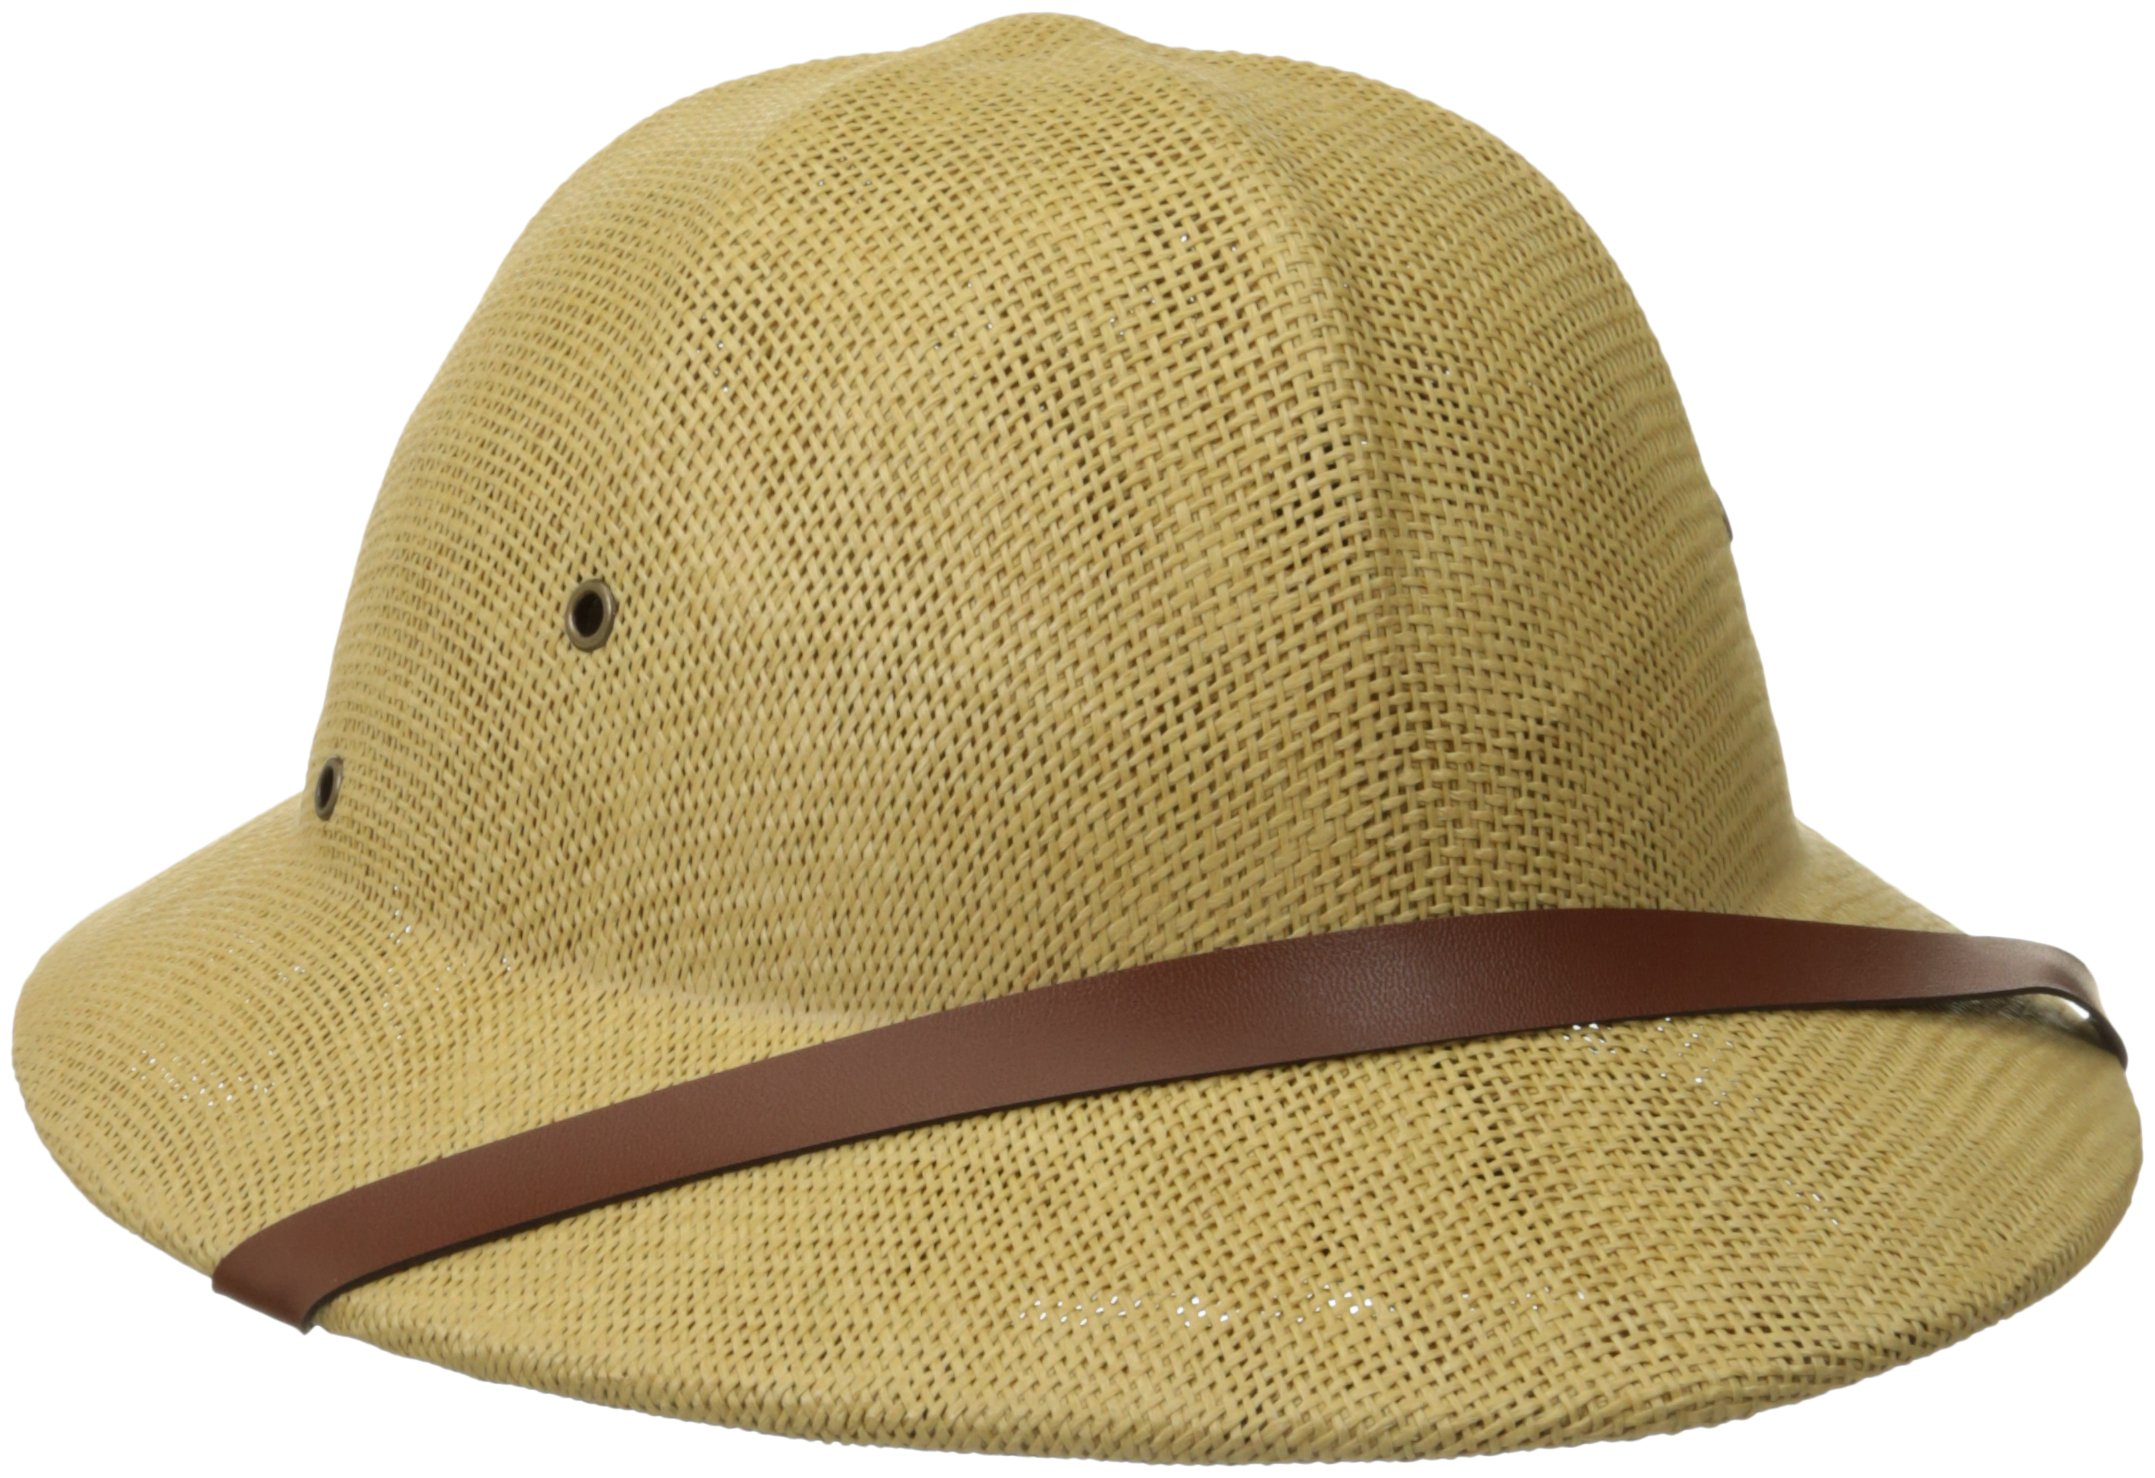 Jacobson Hat Company Men's Pith Helmet, Tan, Adult